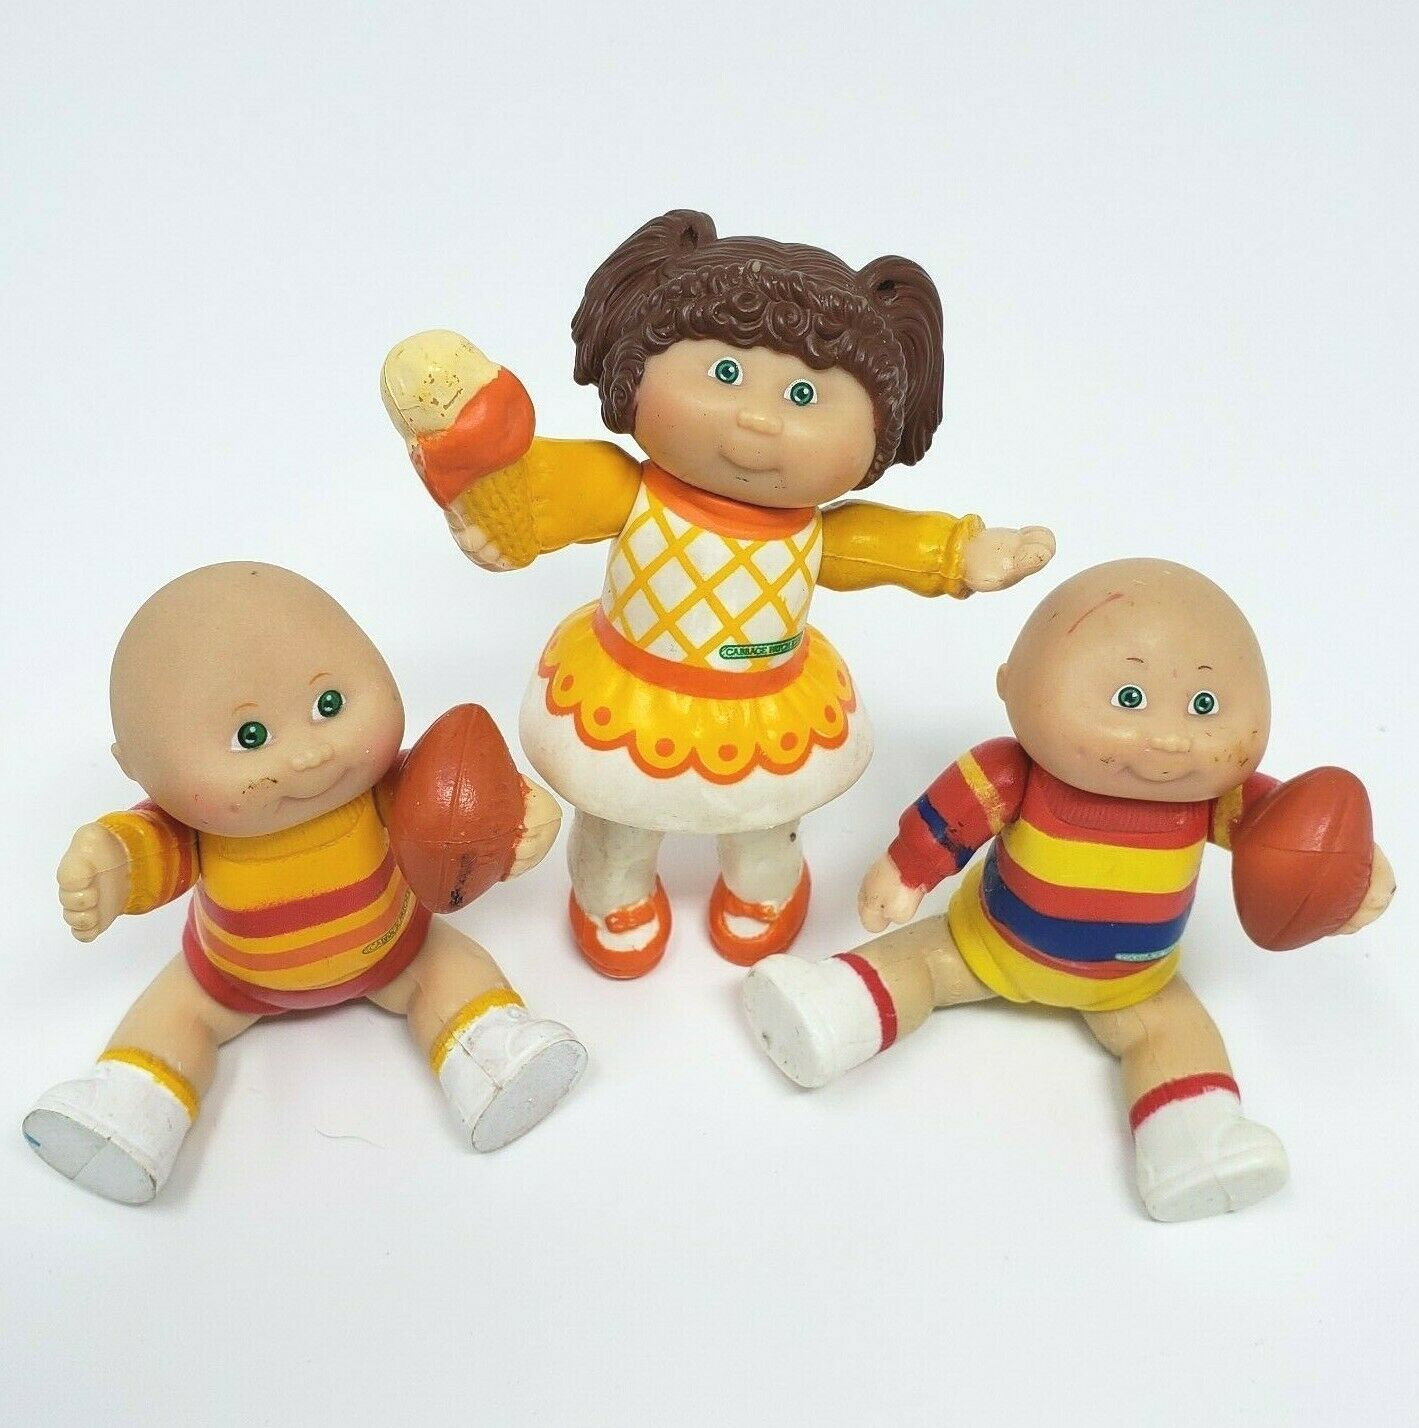 Primary image for 3 VINTAGE 1983 BABY CABBAGE PATCH KIDS BOY &GIRL POSEABLE PVC ACTION FIGURE TOY